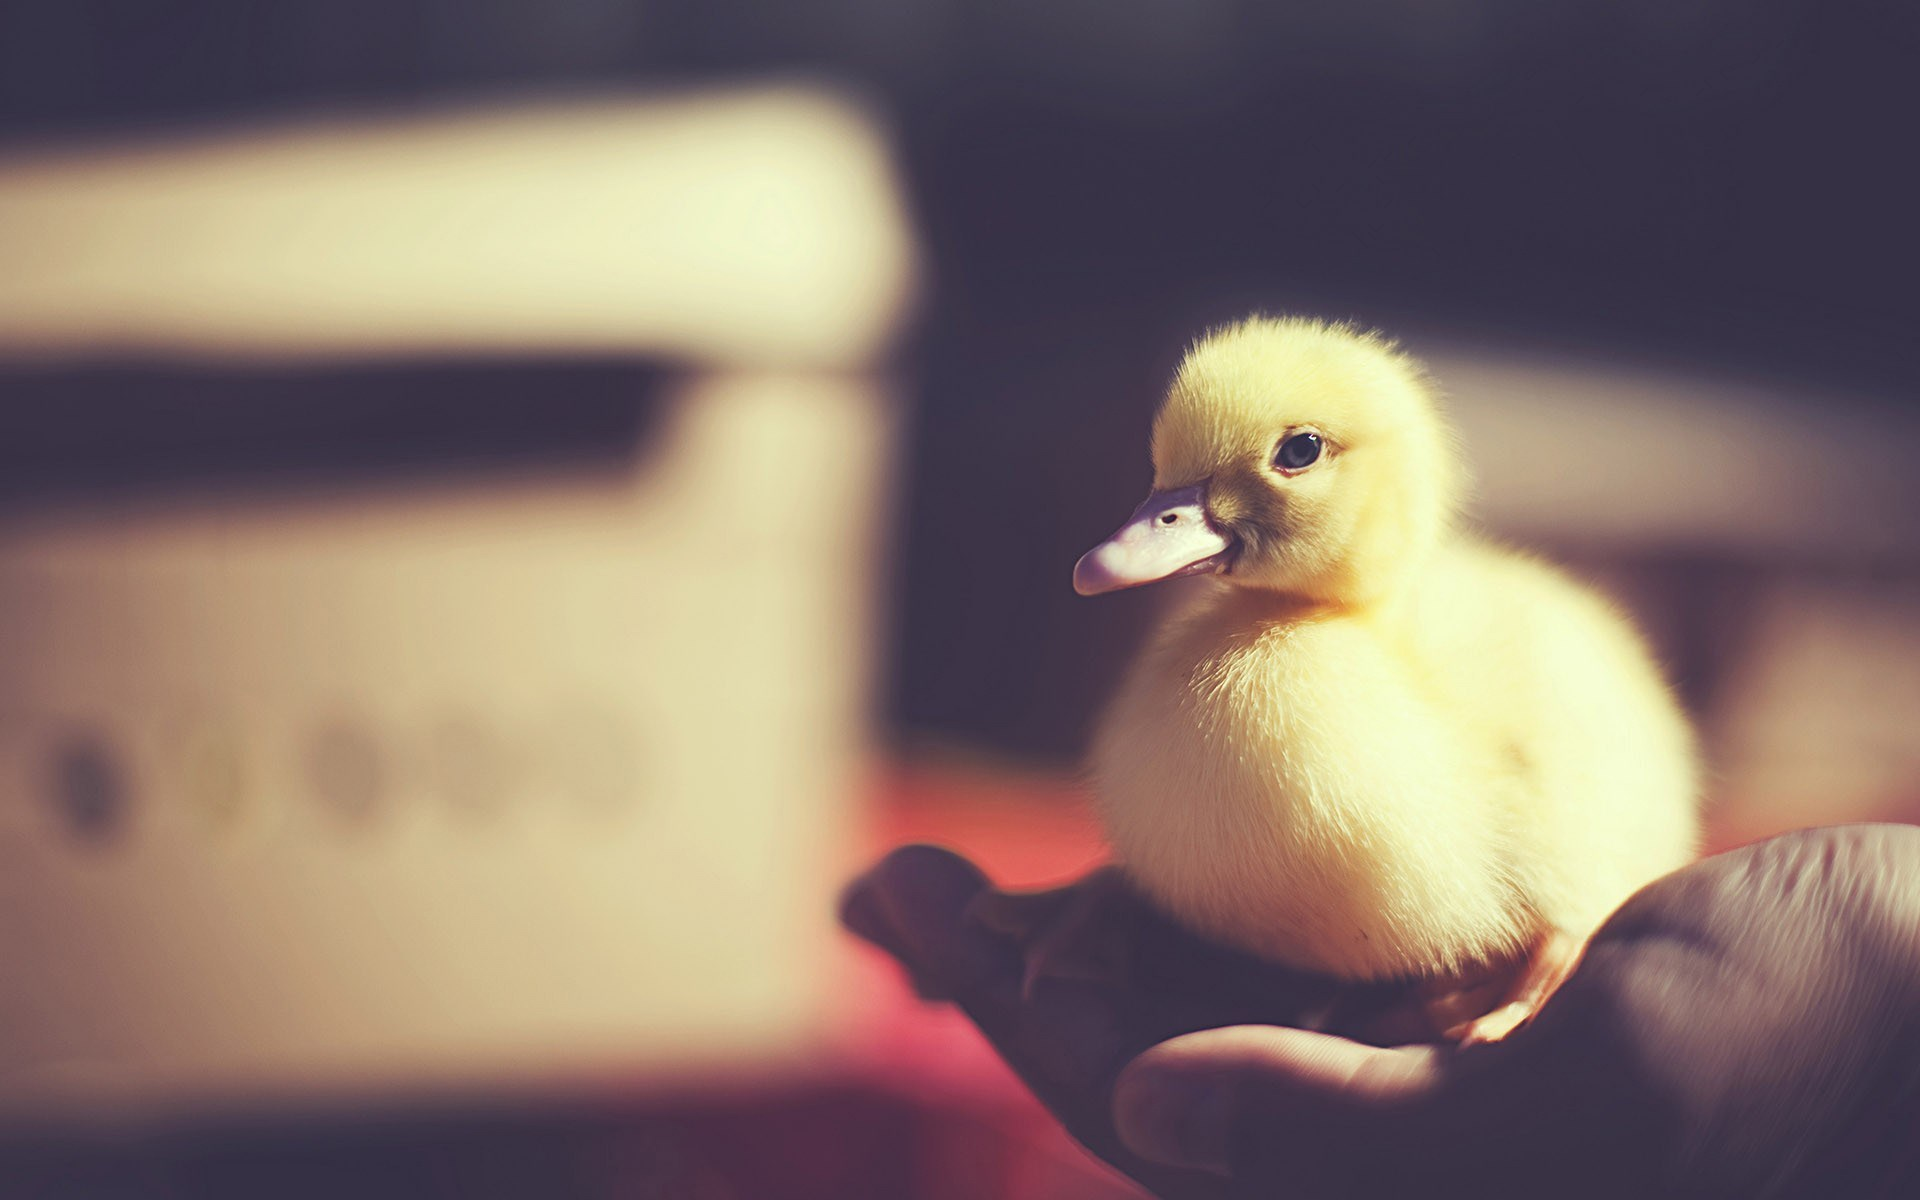 Bird Baby Duck Photo HD Wallpaper